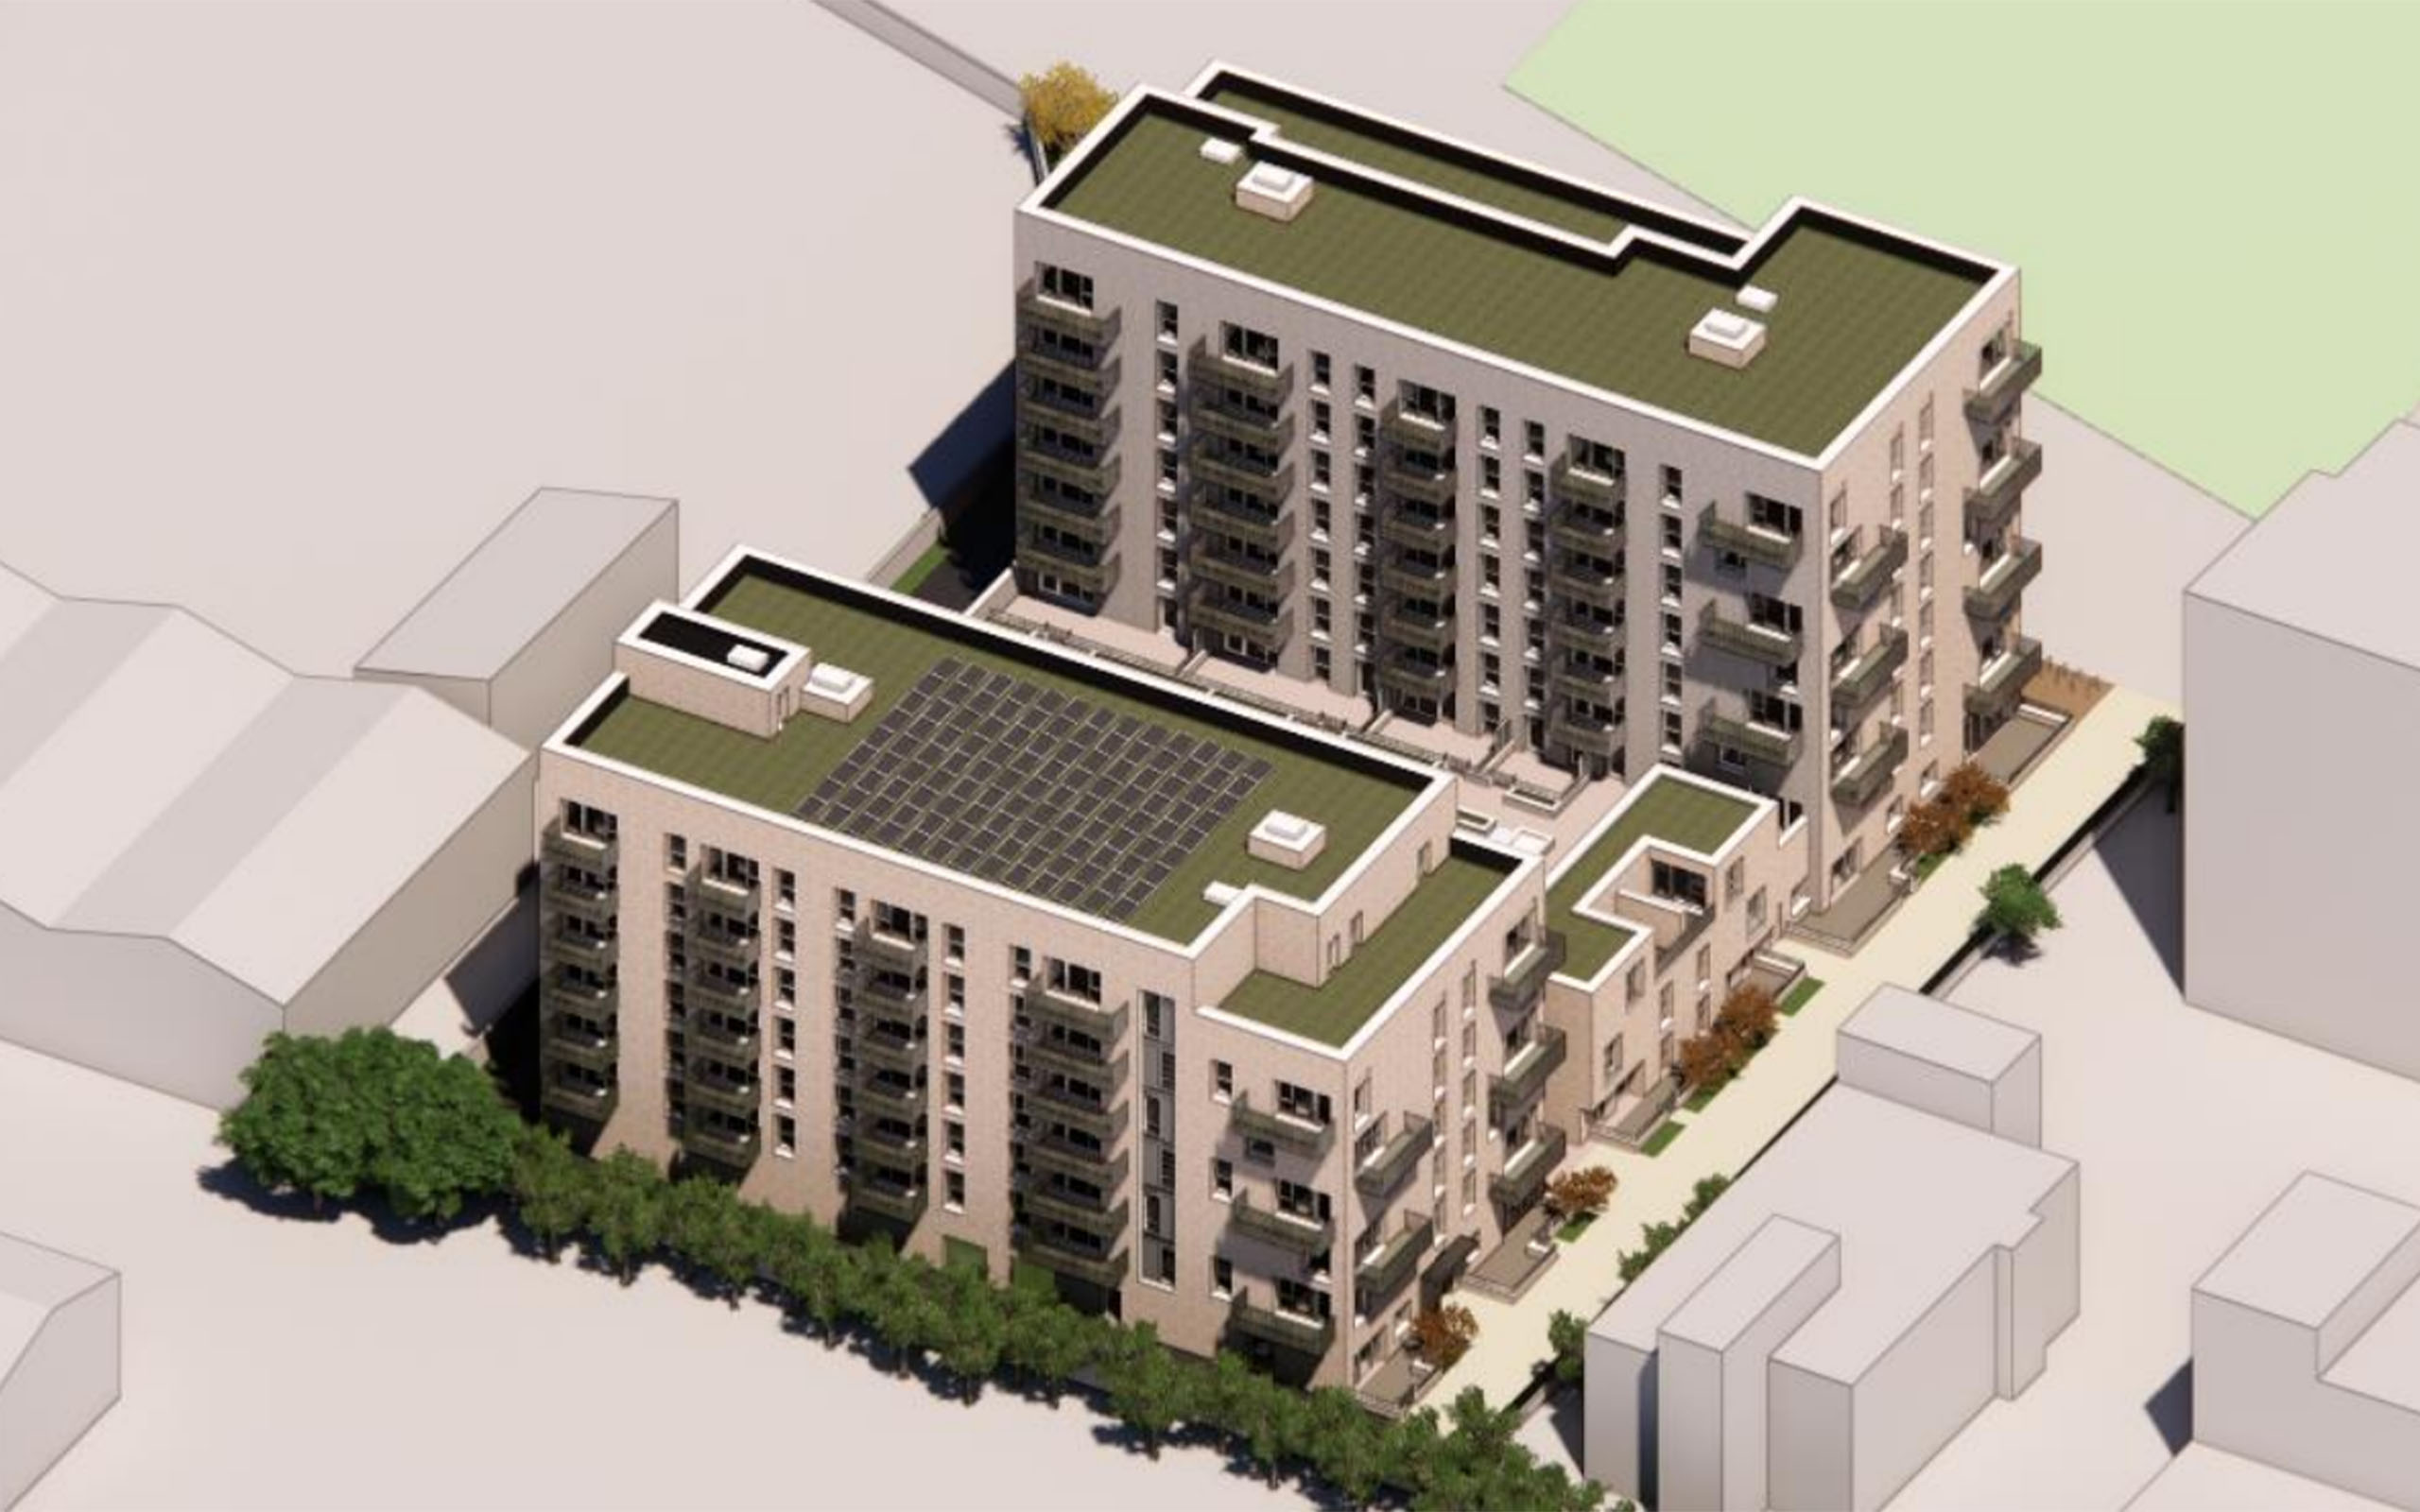 133 Social Homes at Fourth Avenue and Belgard Square North. Tallaght. Image Credit Coady Partnership Architects